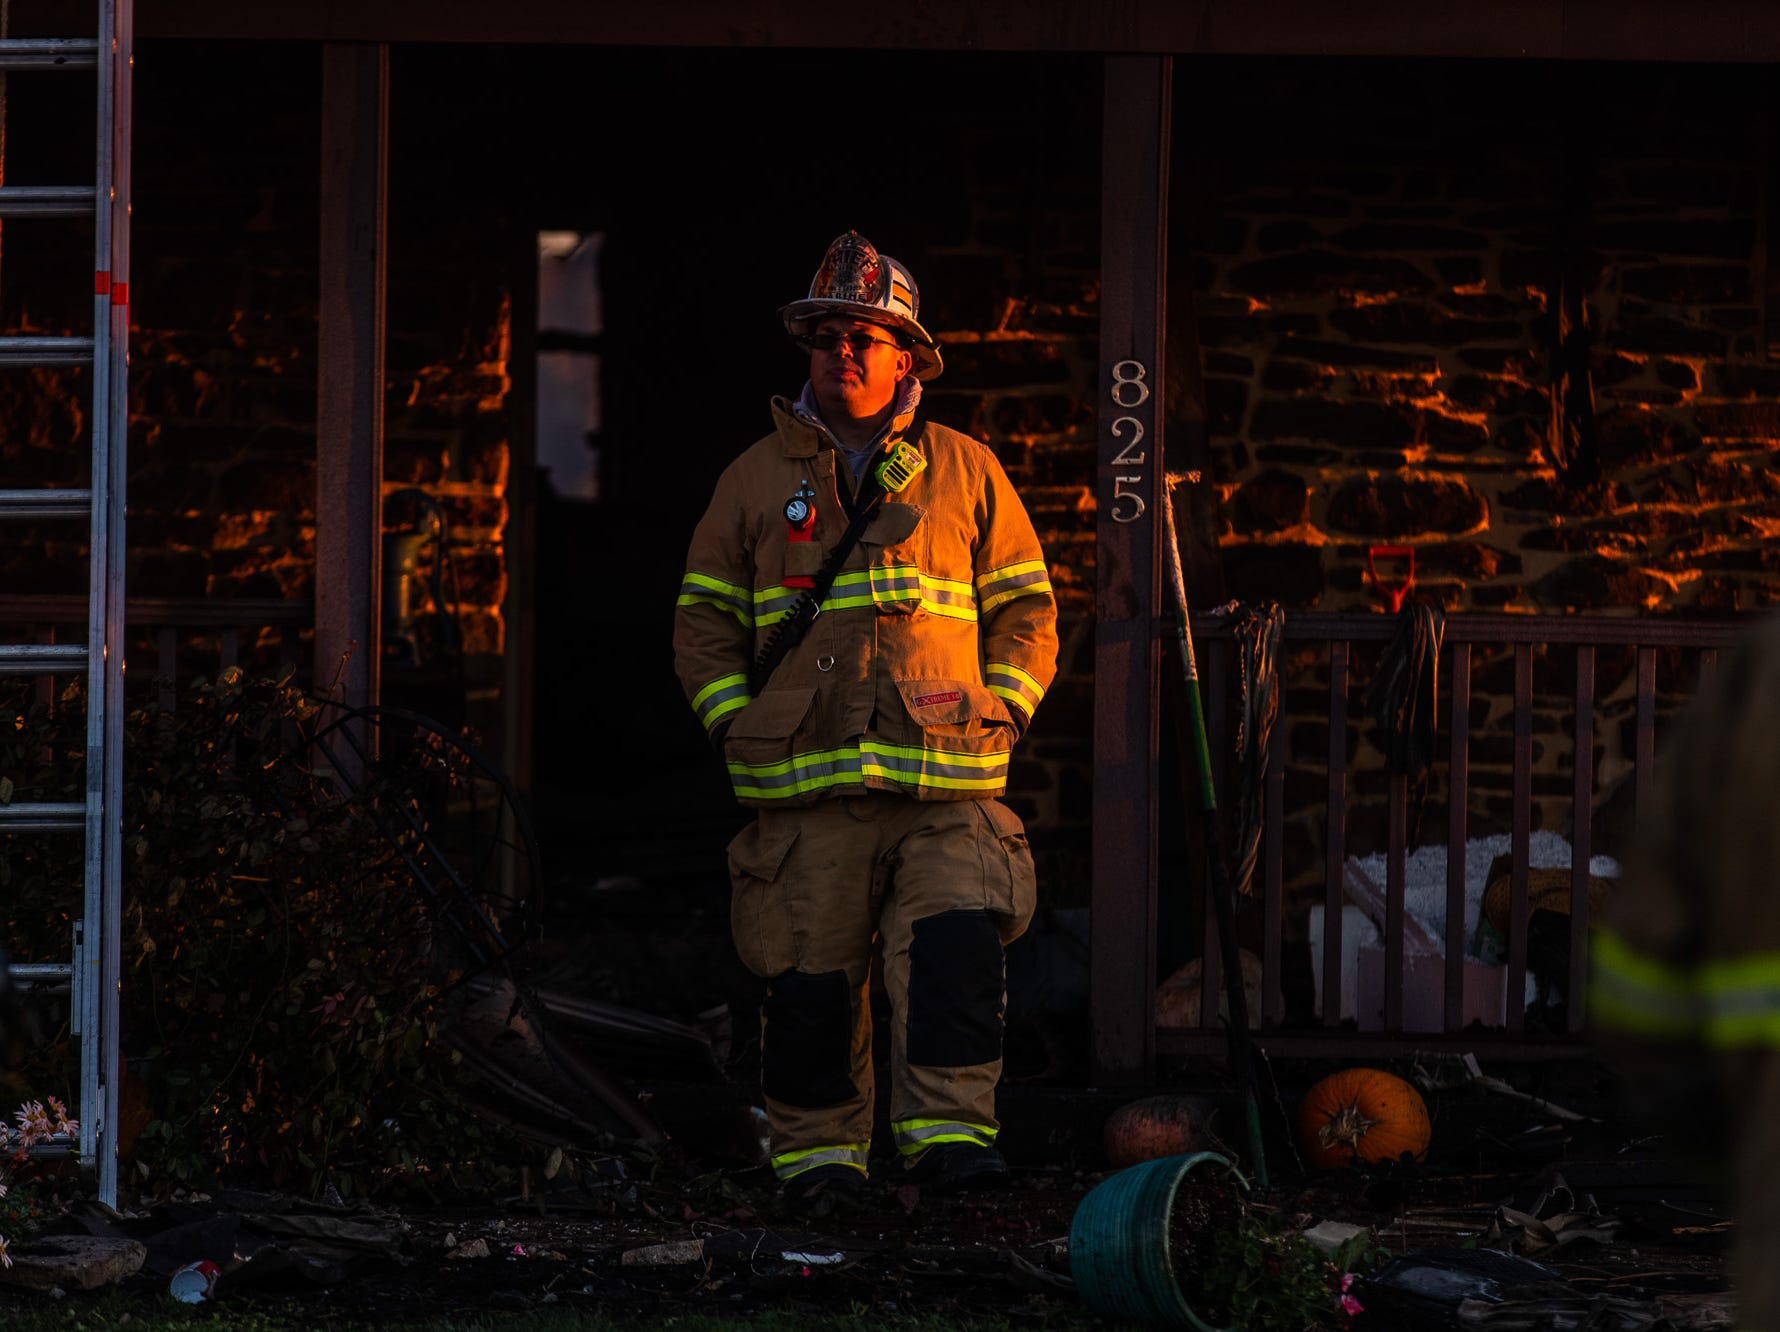 Fire Chief Steve Rabine of United Hook and Ladder works at the scene of a second-alarm heavily engulfed house fire with entrapment on the 800 block of Two Taverns Road, Saturday, Nov. 3, 2018, in Mount Pleasant Township. Firefighters rescued a young child from the second floor of the house while facing heavy wind-driven fire, said United Hook and Ladder Chief Steve Rabine.